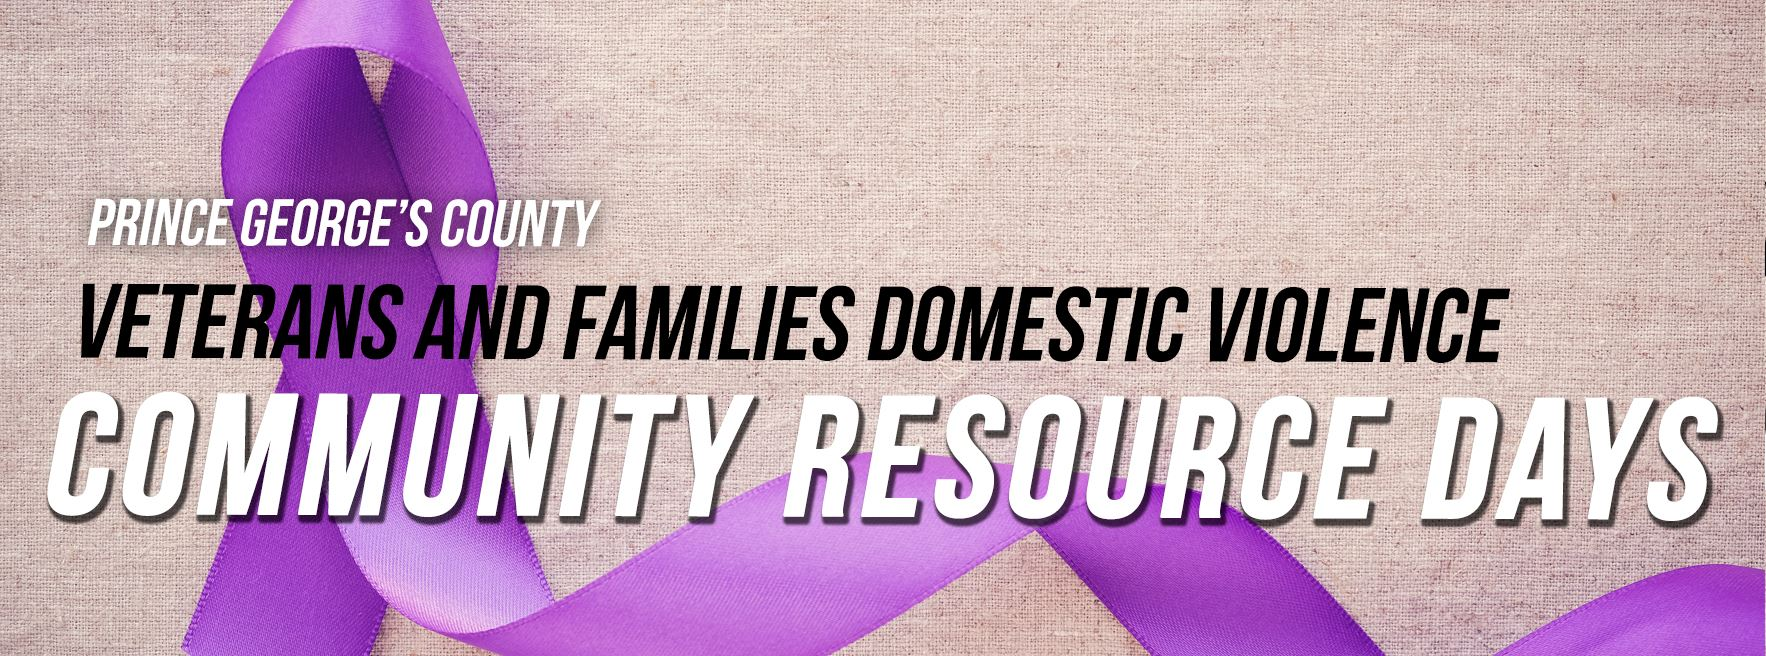 Veterans and DV Community Resource Days Web Banner